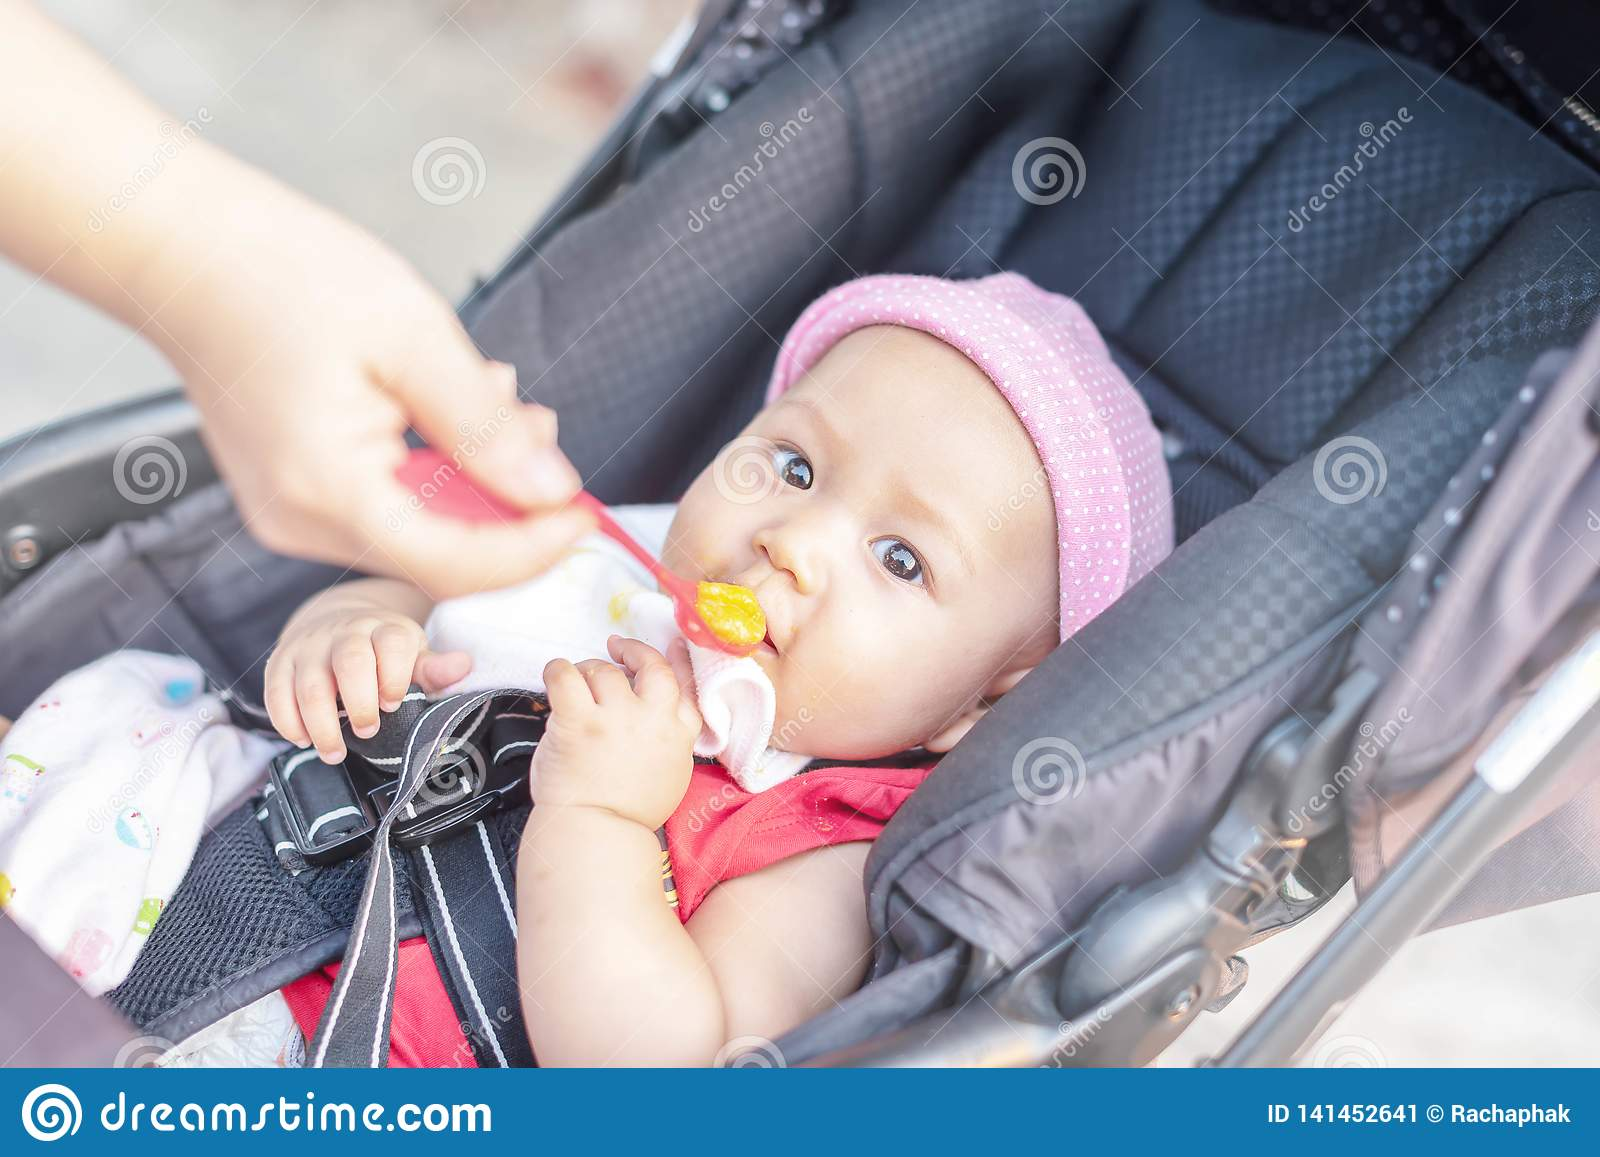 Little cute baby girl sits on a chair and eating with spoon. Mother feeding baby holding out her hand with a spoon of food made